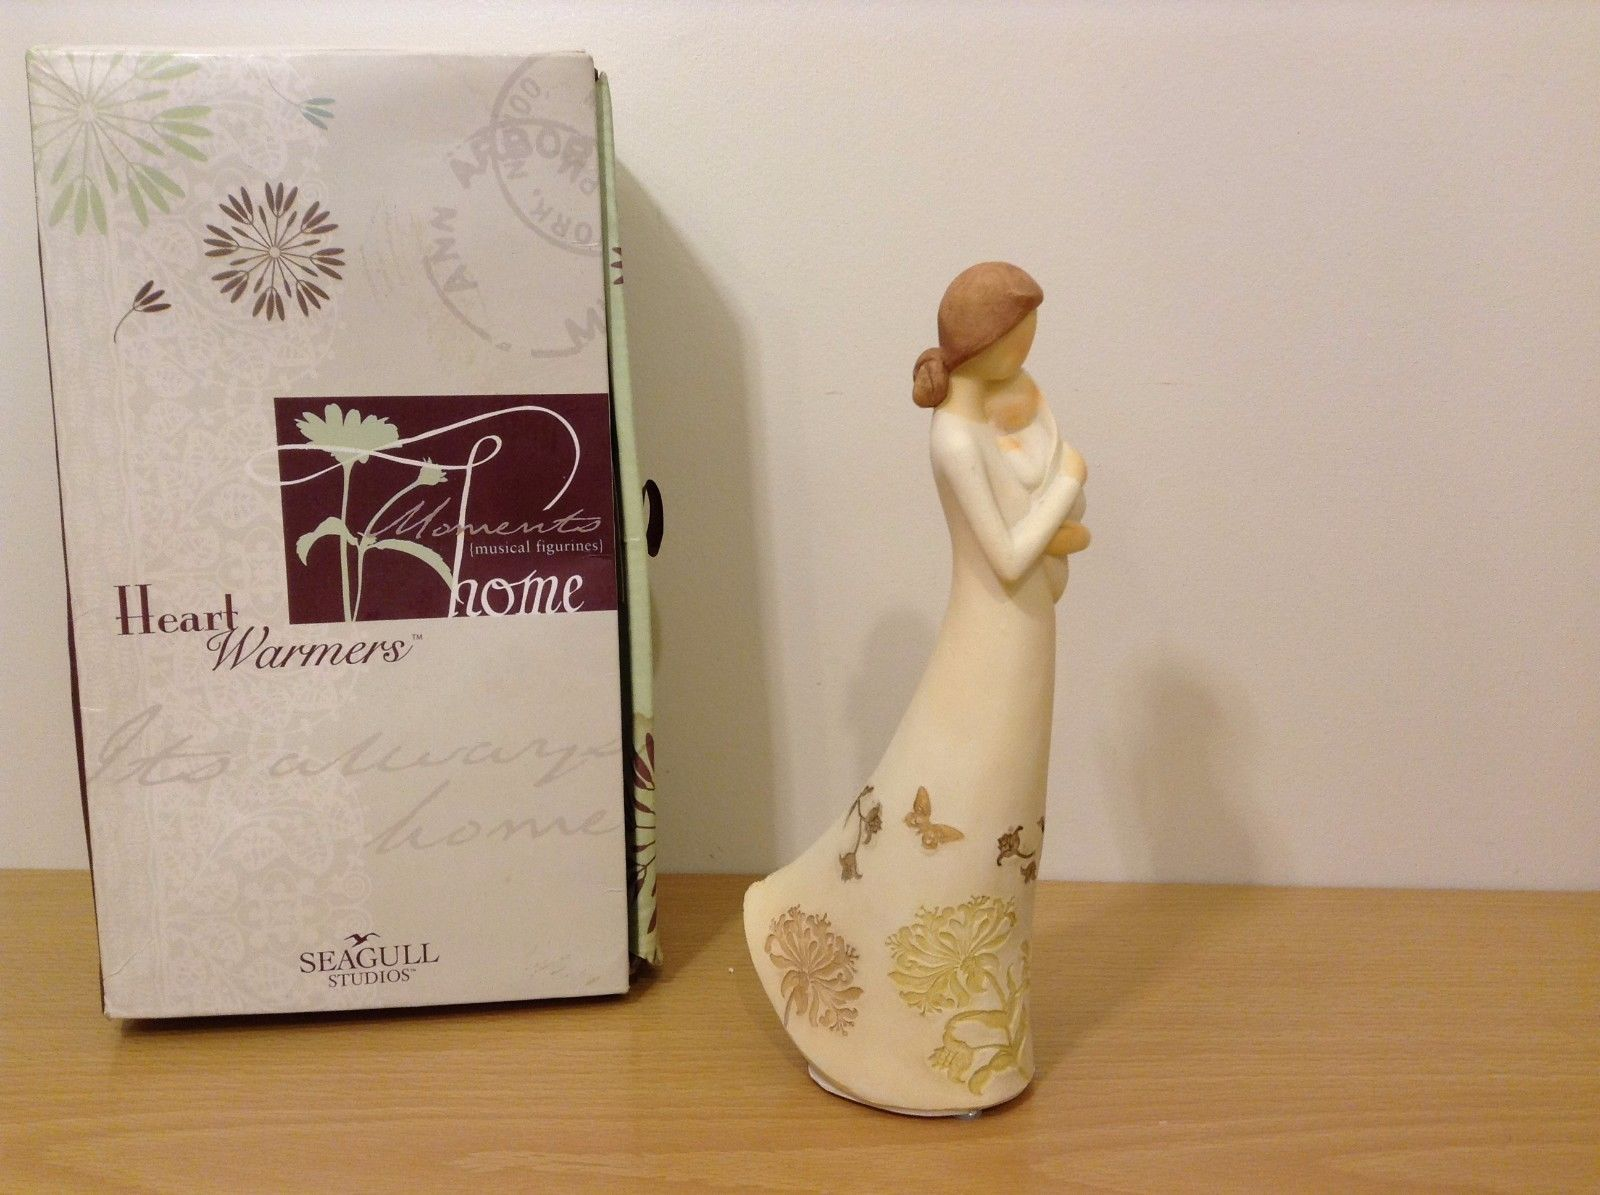 New Seagull Studios Heart Warmers Home A Mother's Heart Figurine Resin